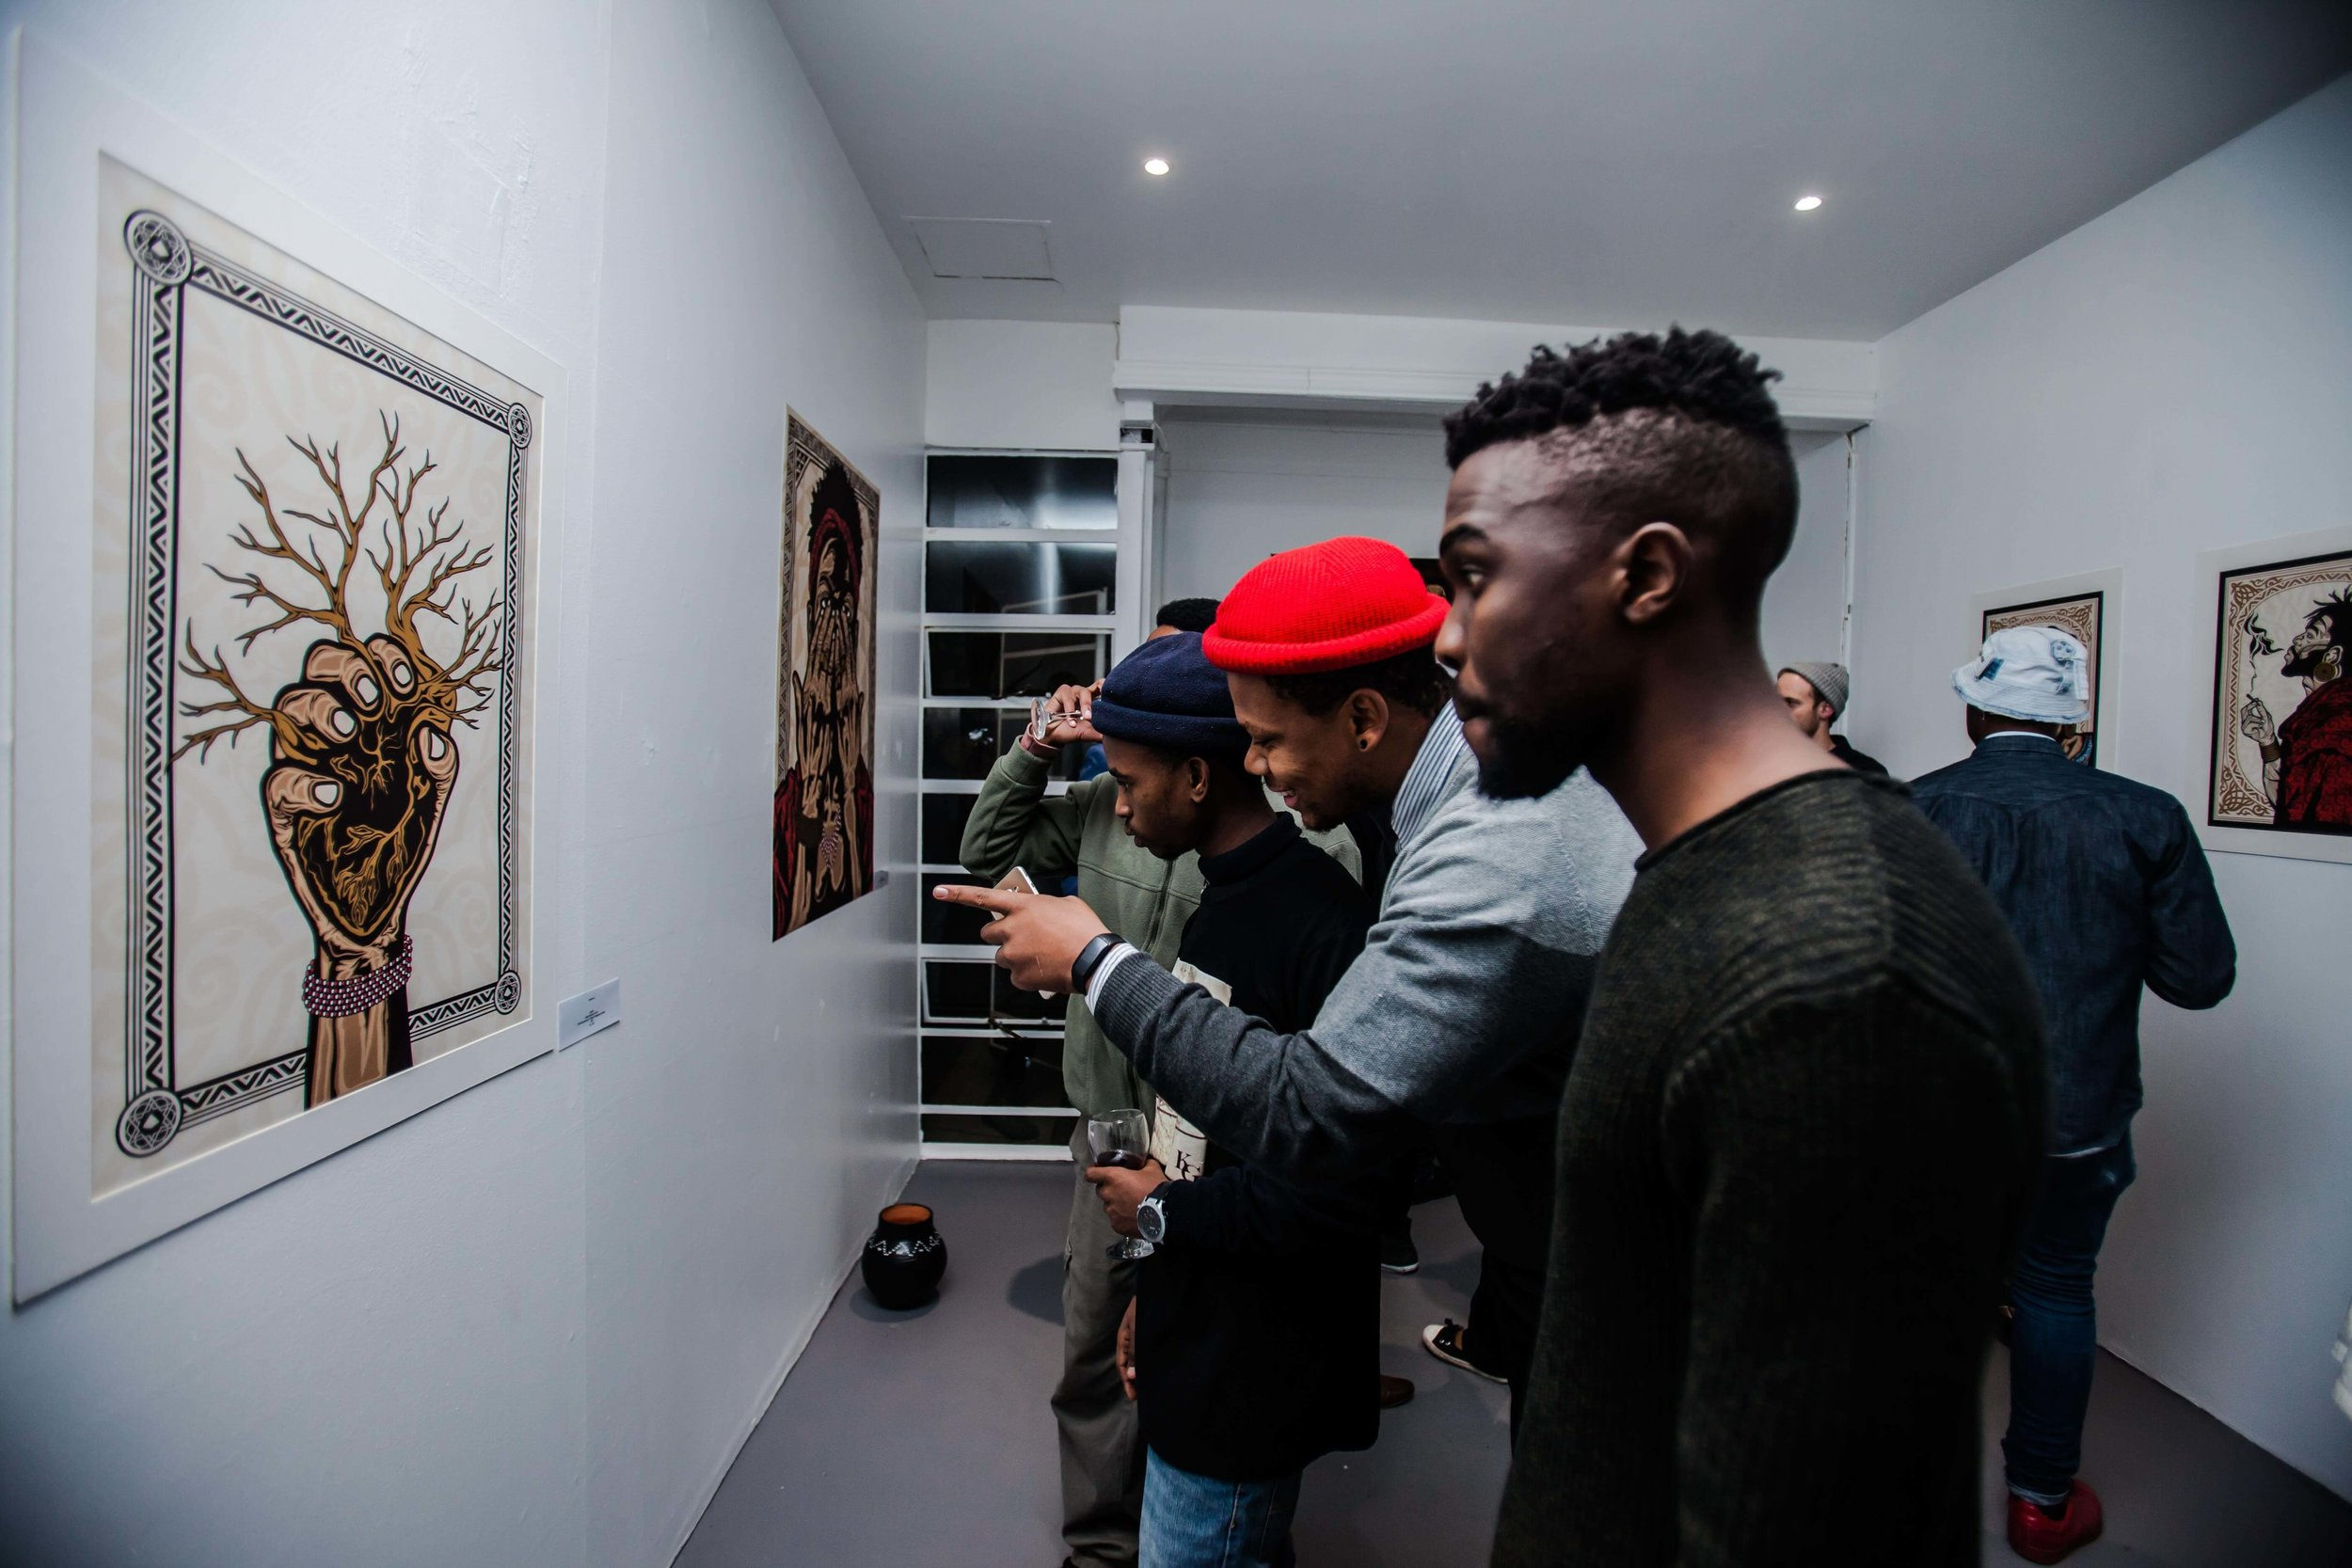 Modise Sepend_Traces Of Culture (29 of 485).jpg